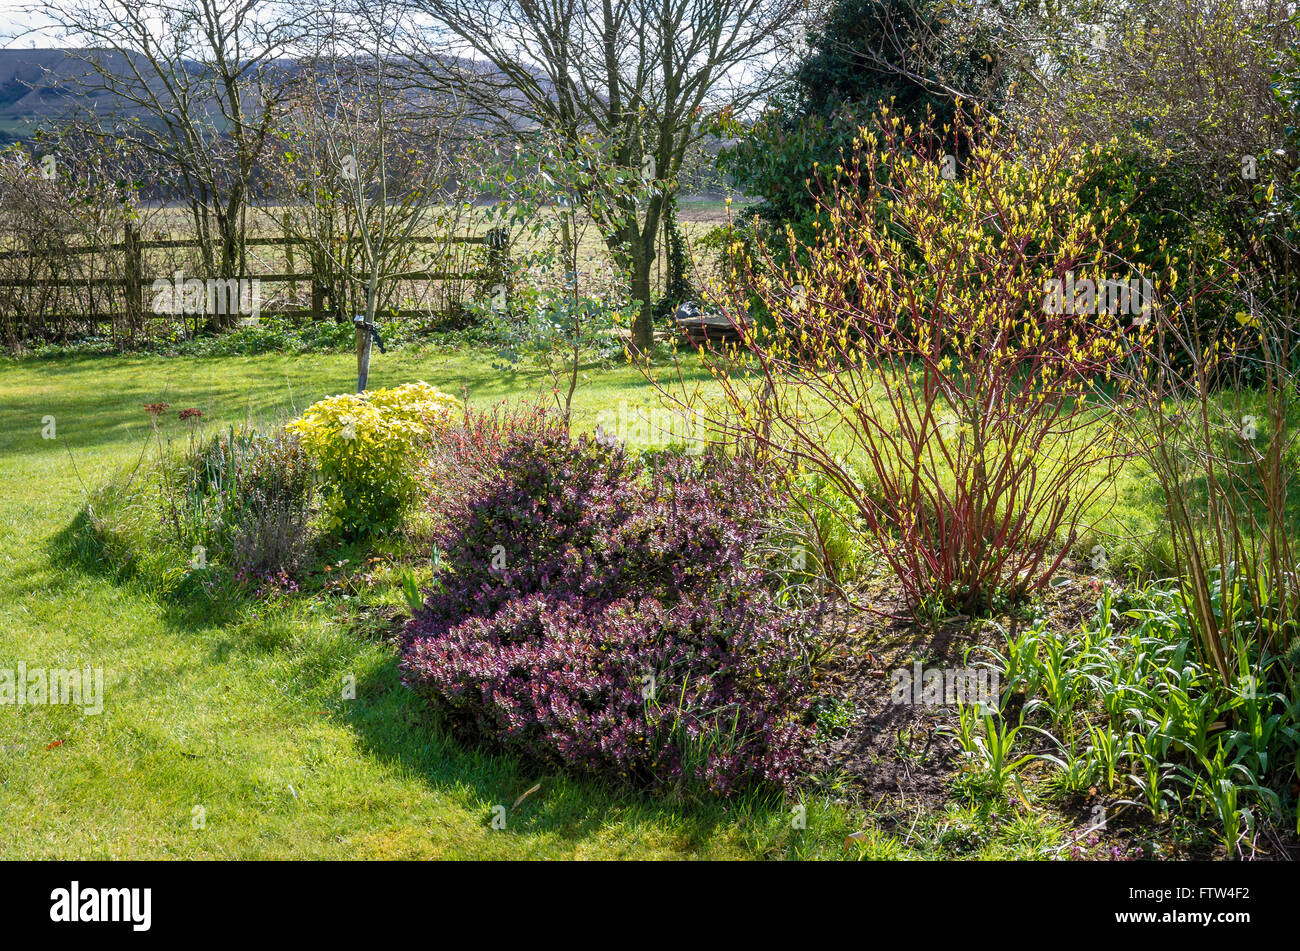 Peninsular border in early spring showing hebe and cornus - Stock Image